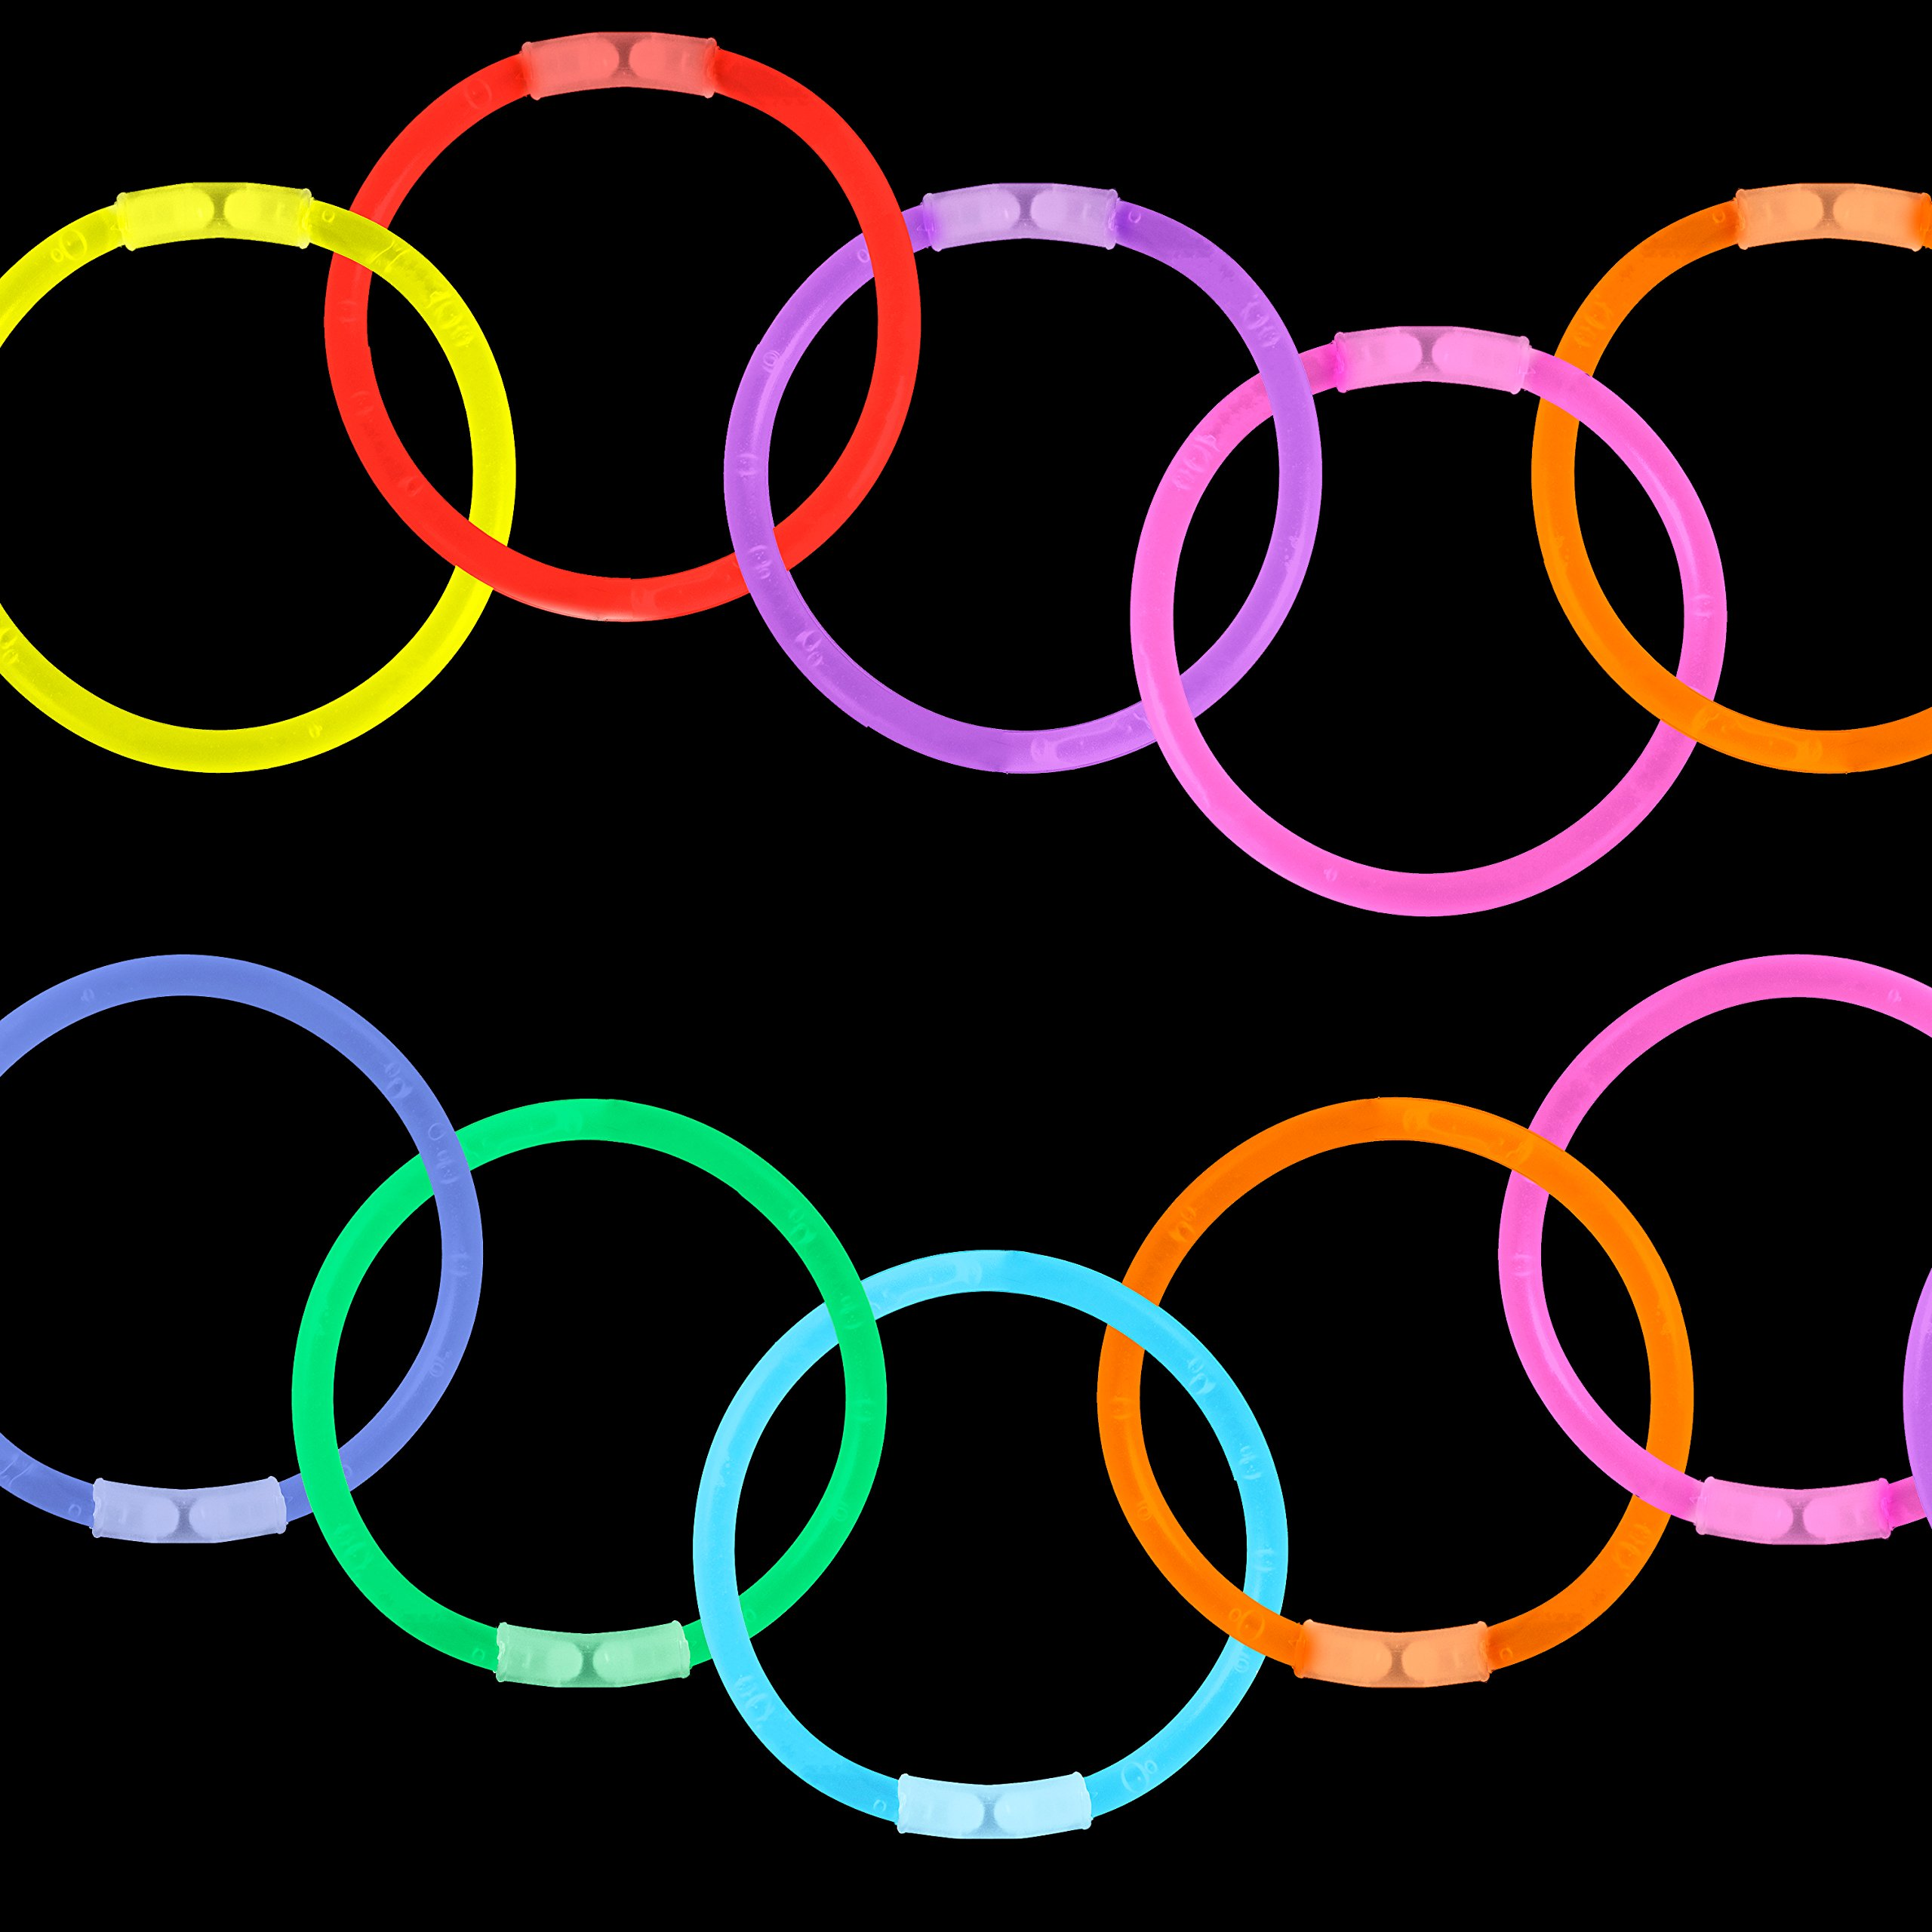 Lumistick Glow Sticks Variety Pack of Glowing Party Favors Includes Necklaces, Bracelets and Glasses (Assorted, 200 Packs) by Lumistick (Image #6)